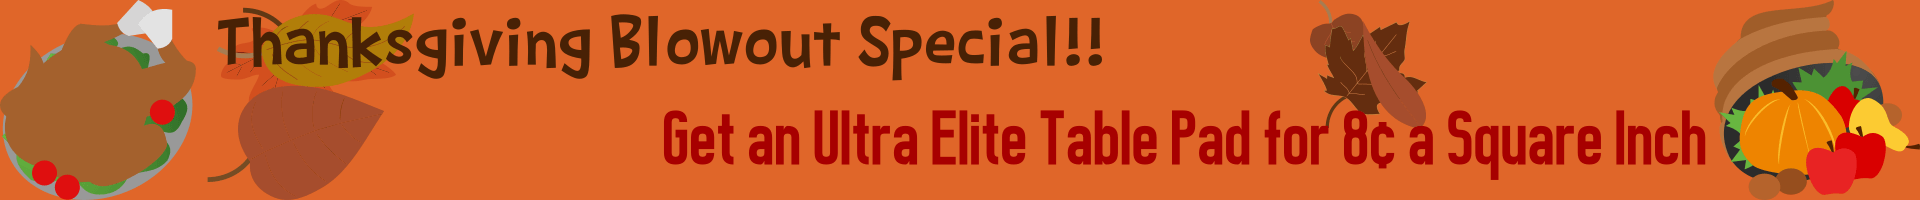 Thanksgiving Special - Get An Ultra Elite Table Pad For 8 Cents A Square Inch